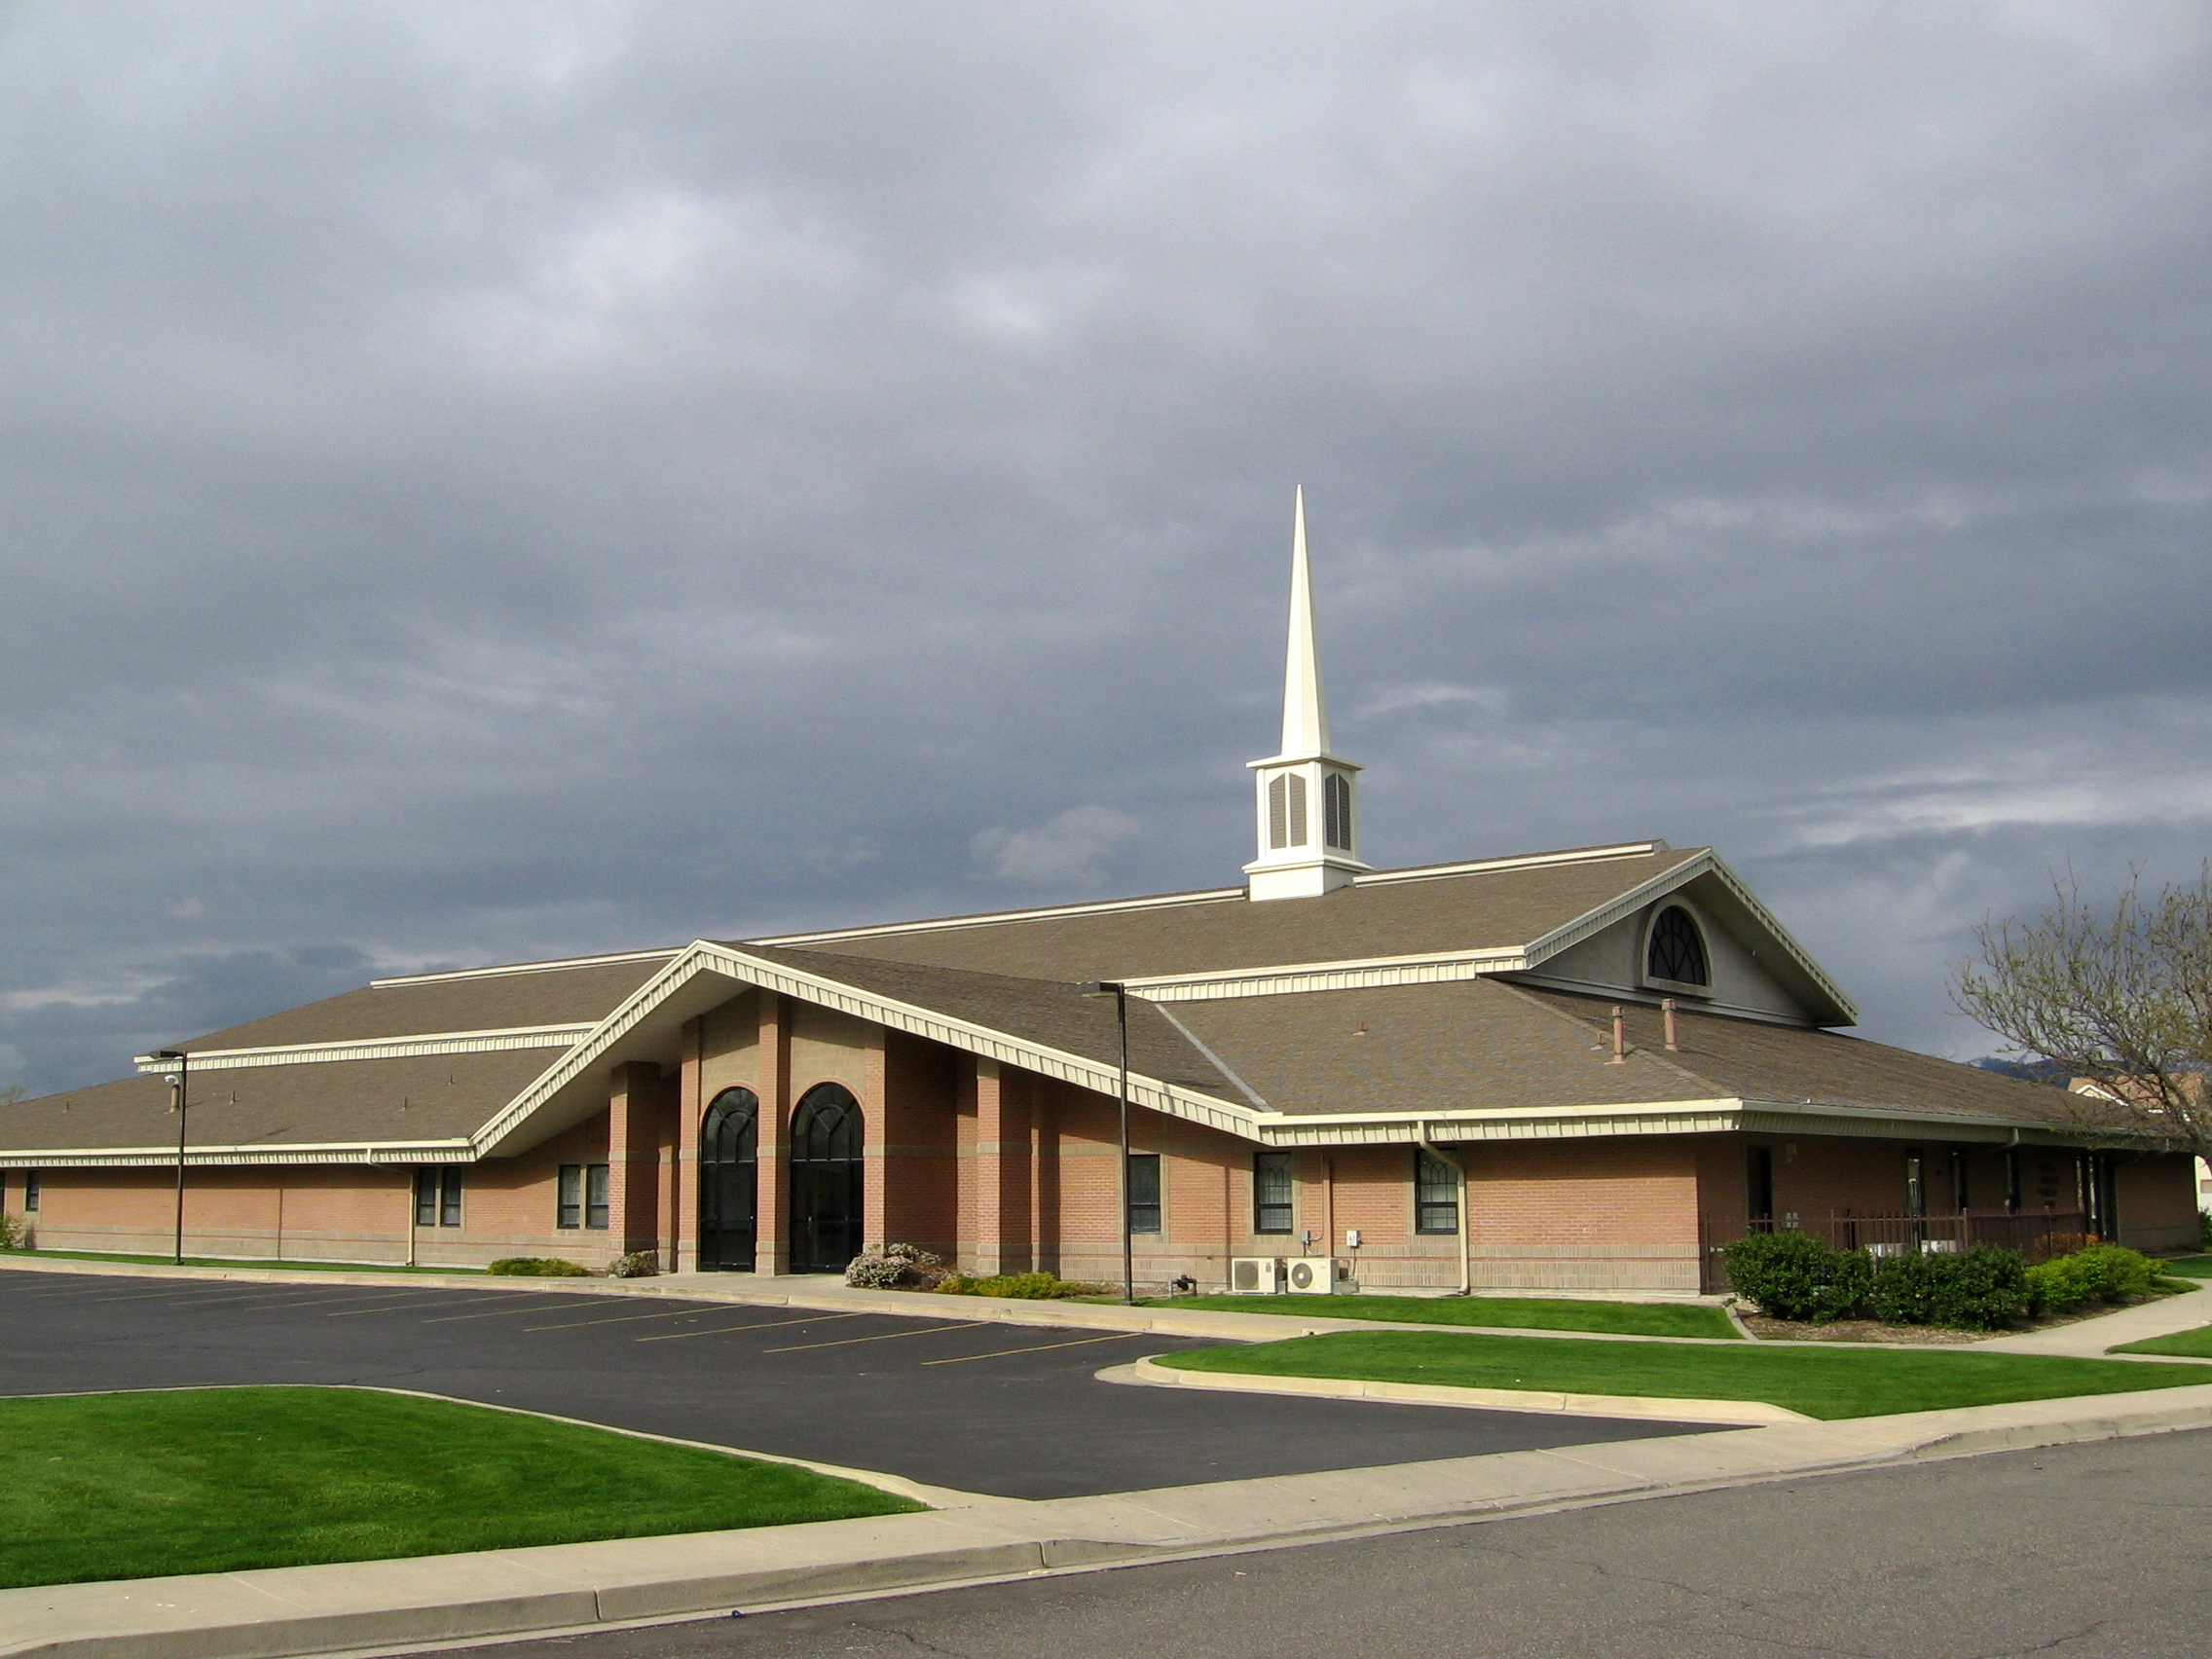 File:LDS stake center in West Valley City, Utah.jpg ...